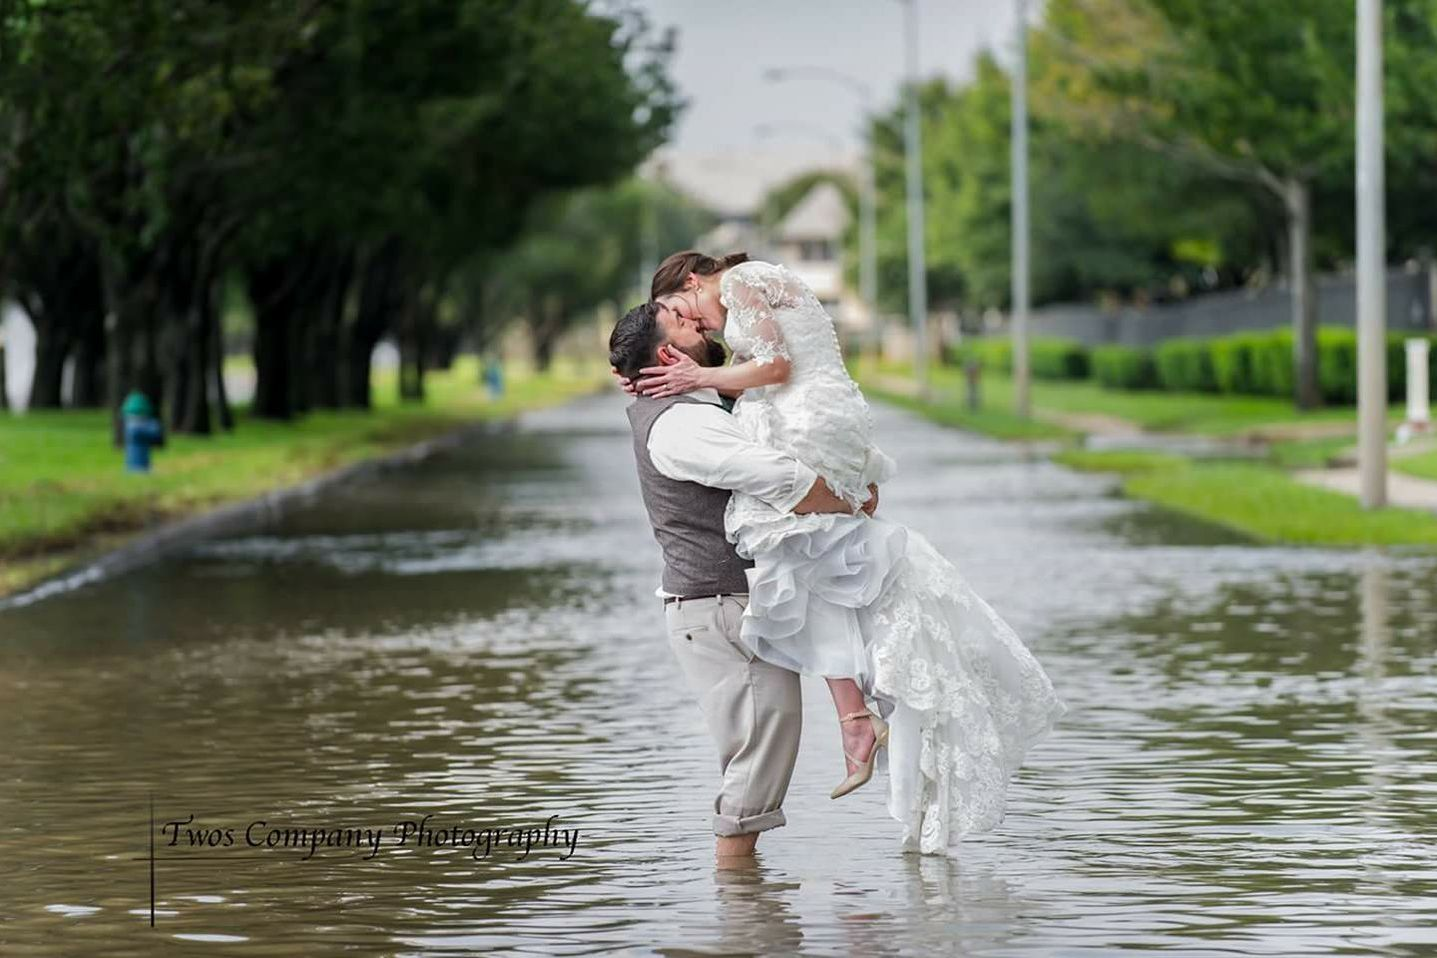 Newlyweds Pose in Flooded Street After Harvey Changes Their Wedding Day Plans